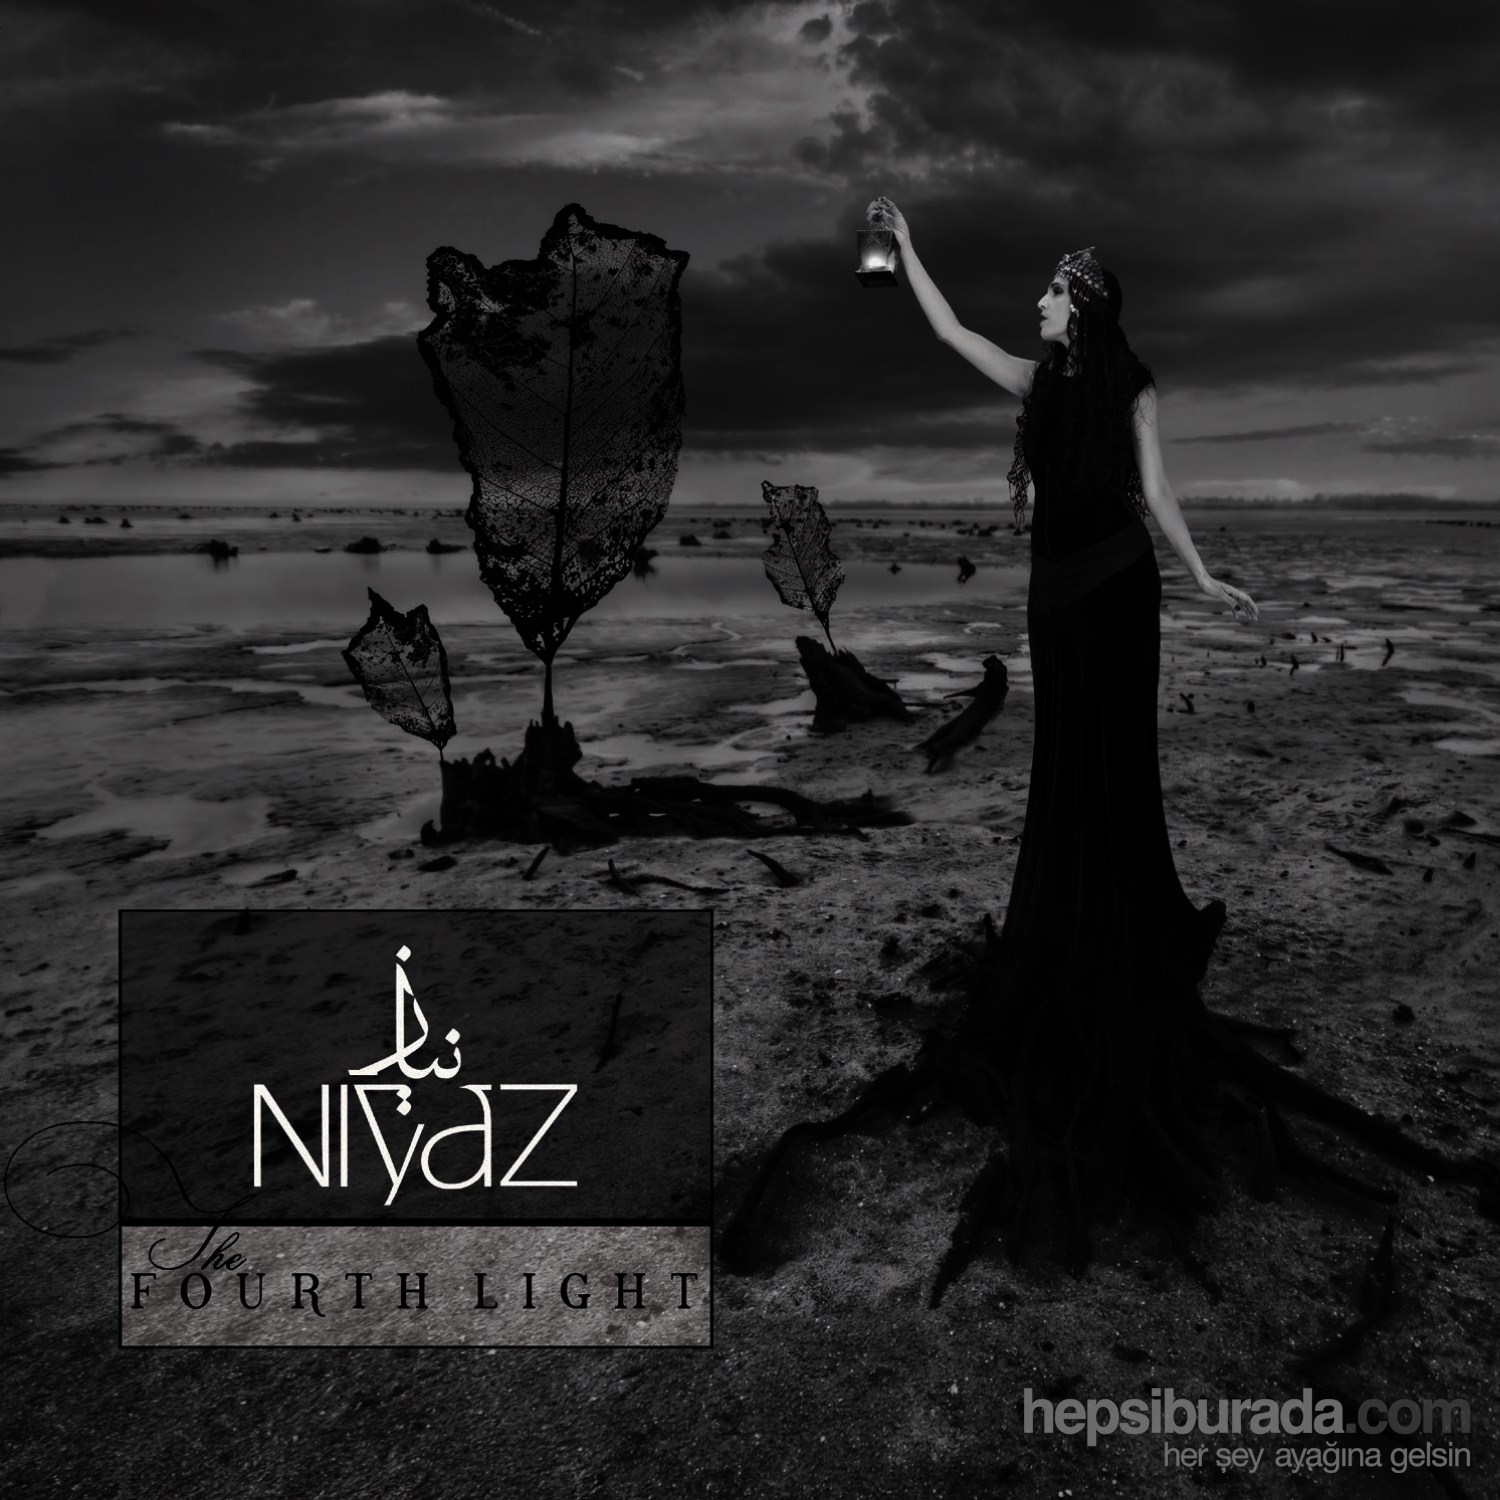 Niyaz - The Fourth Light